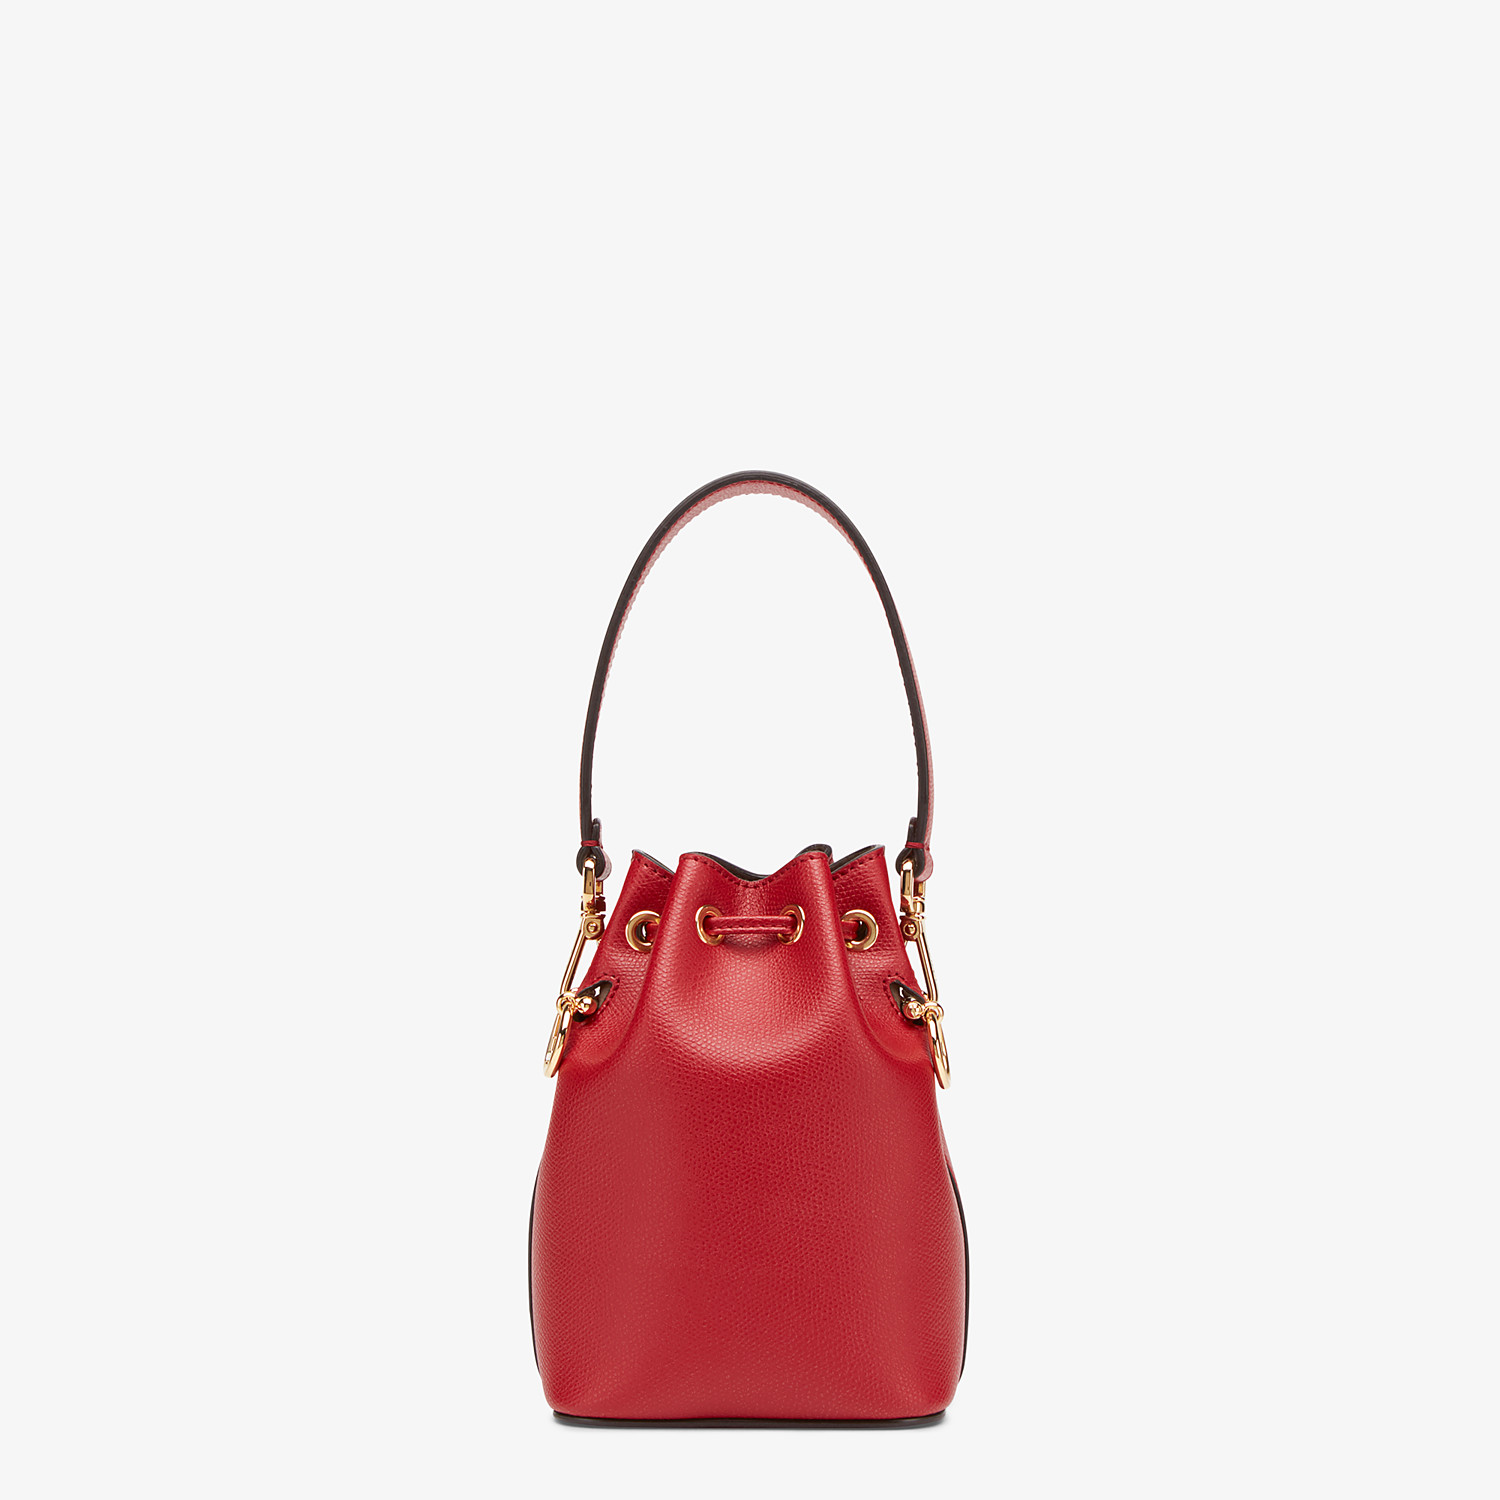 FENDI MON TRESOR - Red leather mini-bag - view 3 detail